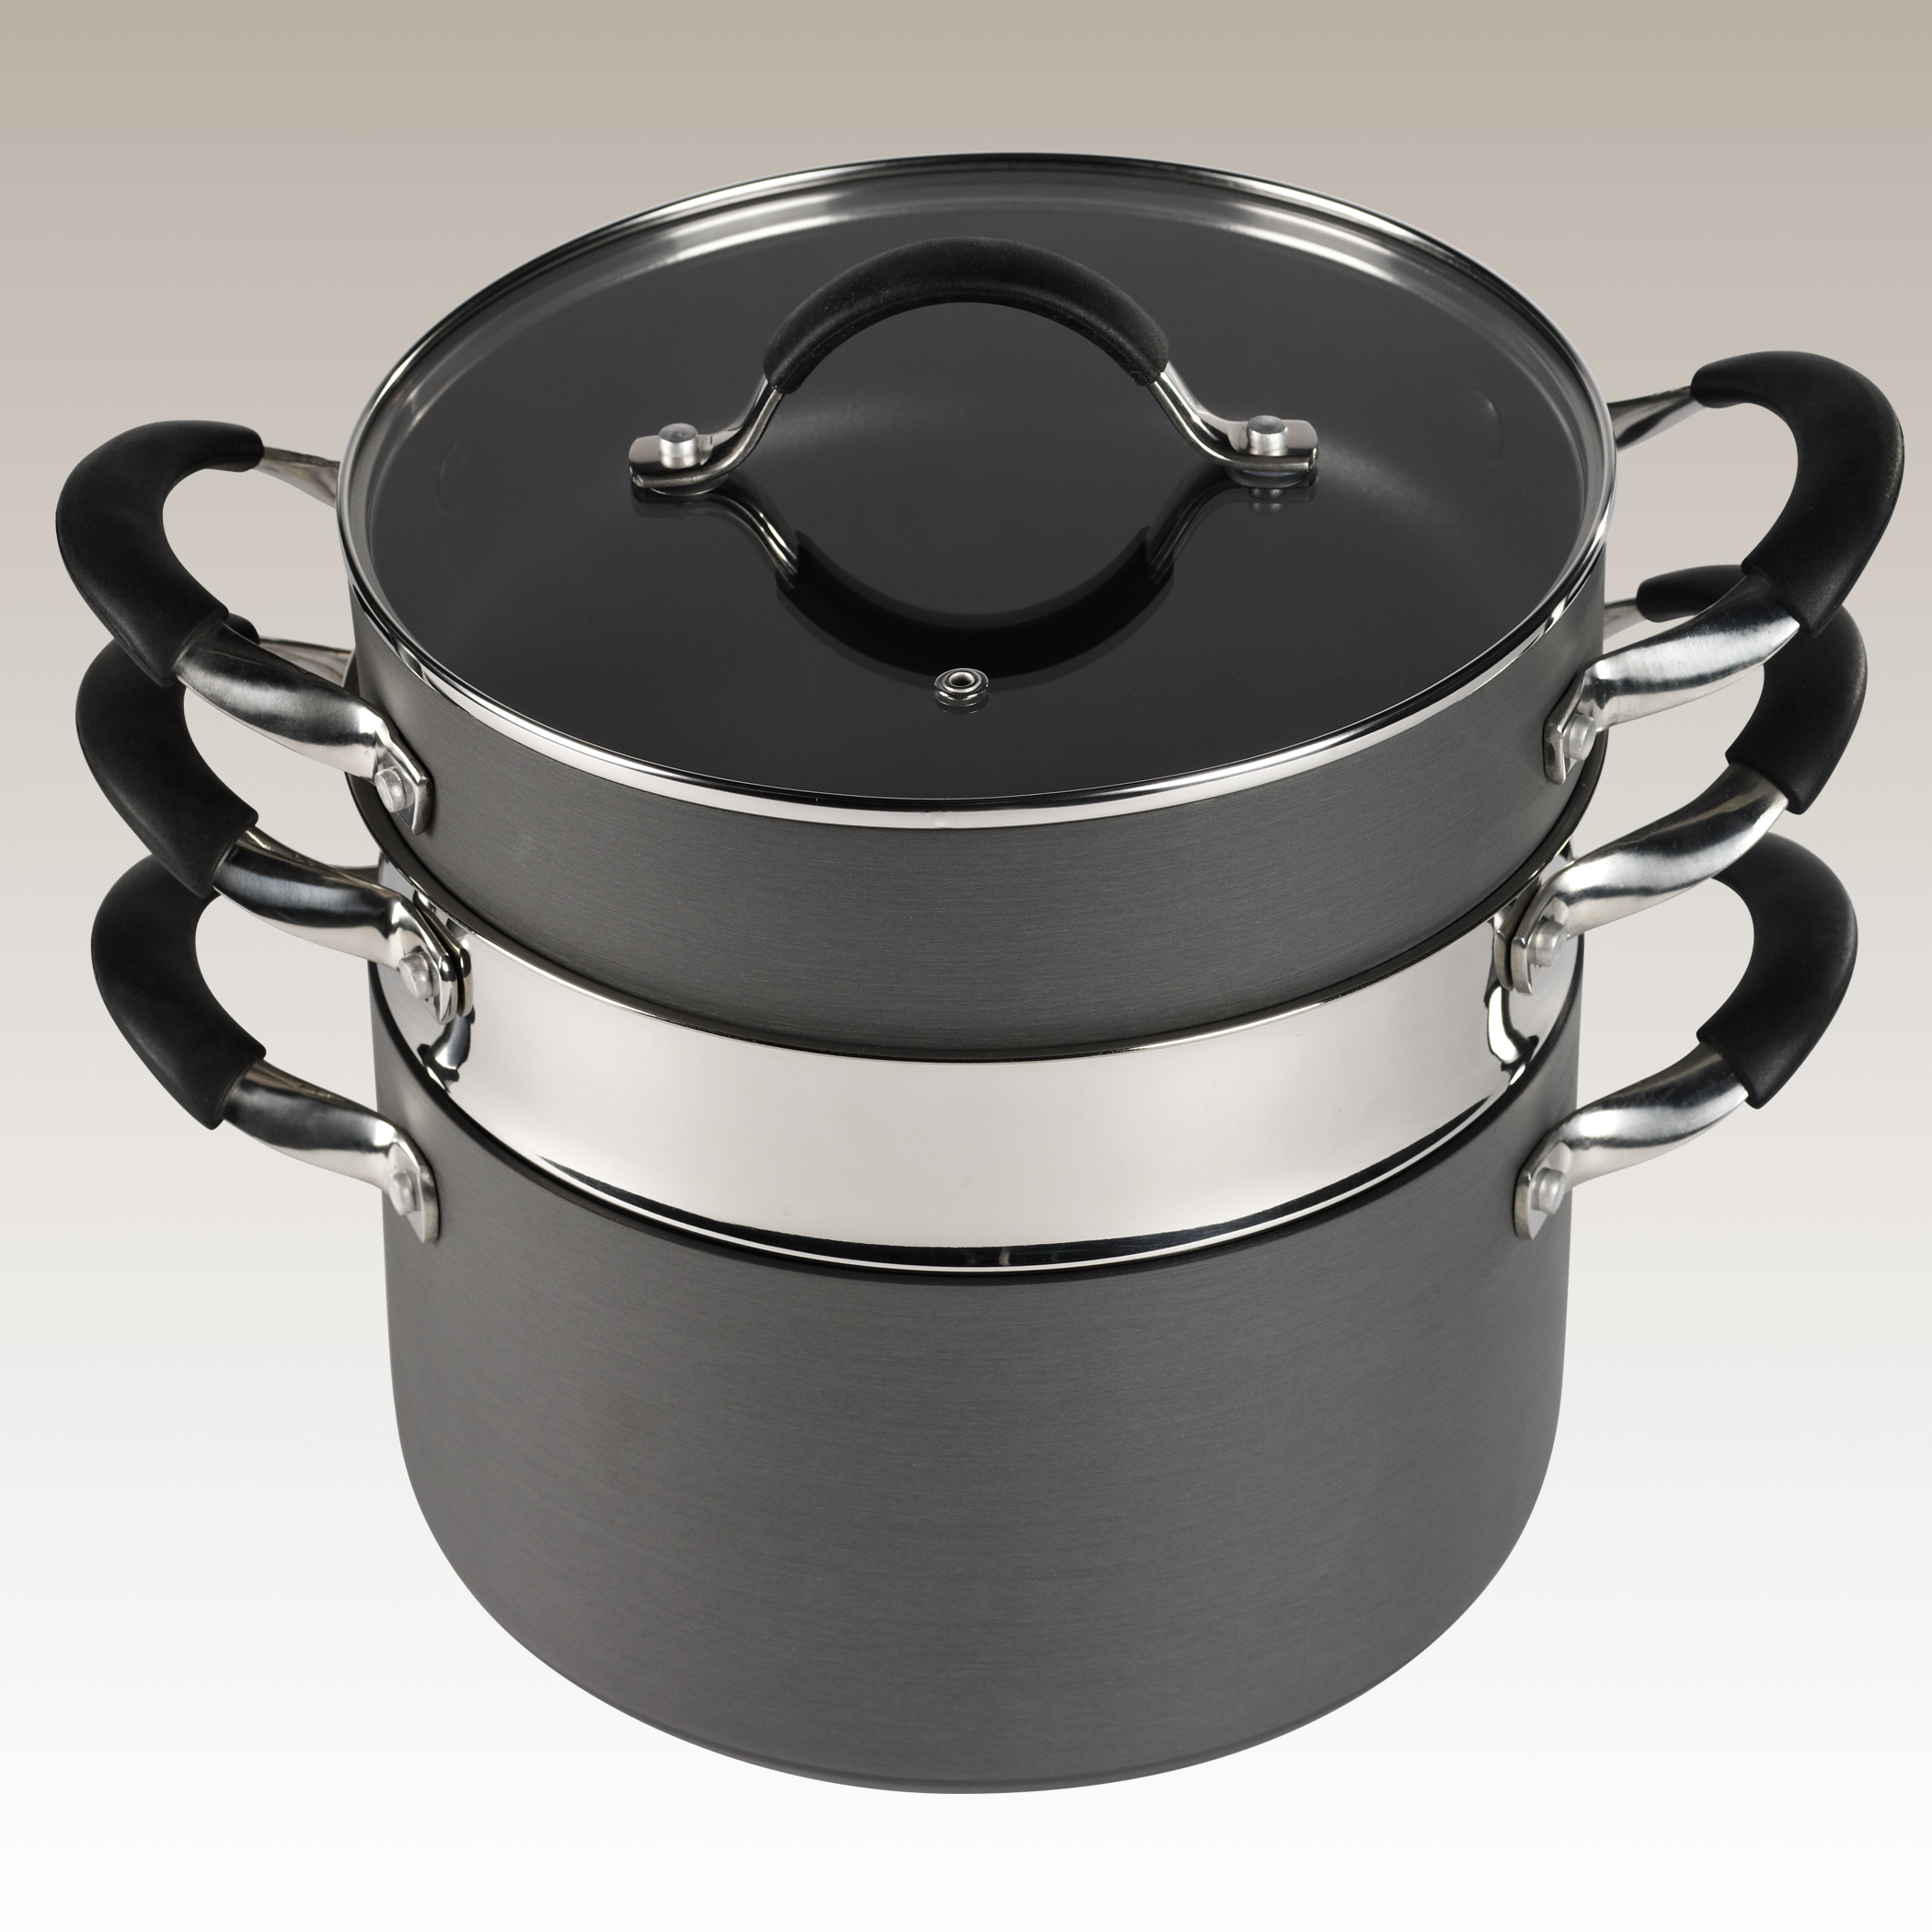 4 Piece Space Efficient Non-Stick Hard Anodized Multi-function Cooking System by Stax Living.